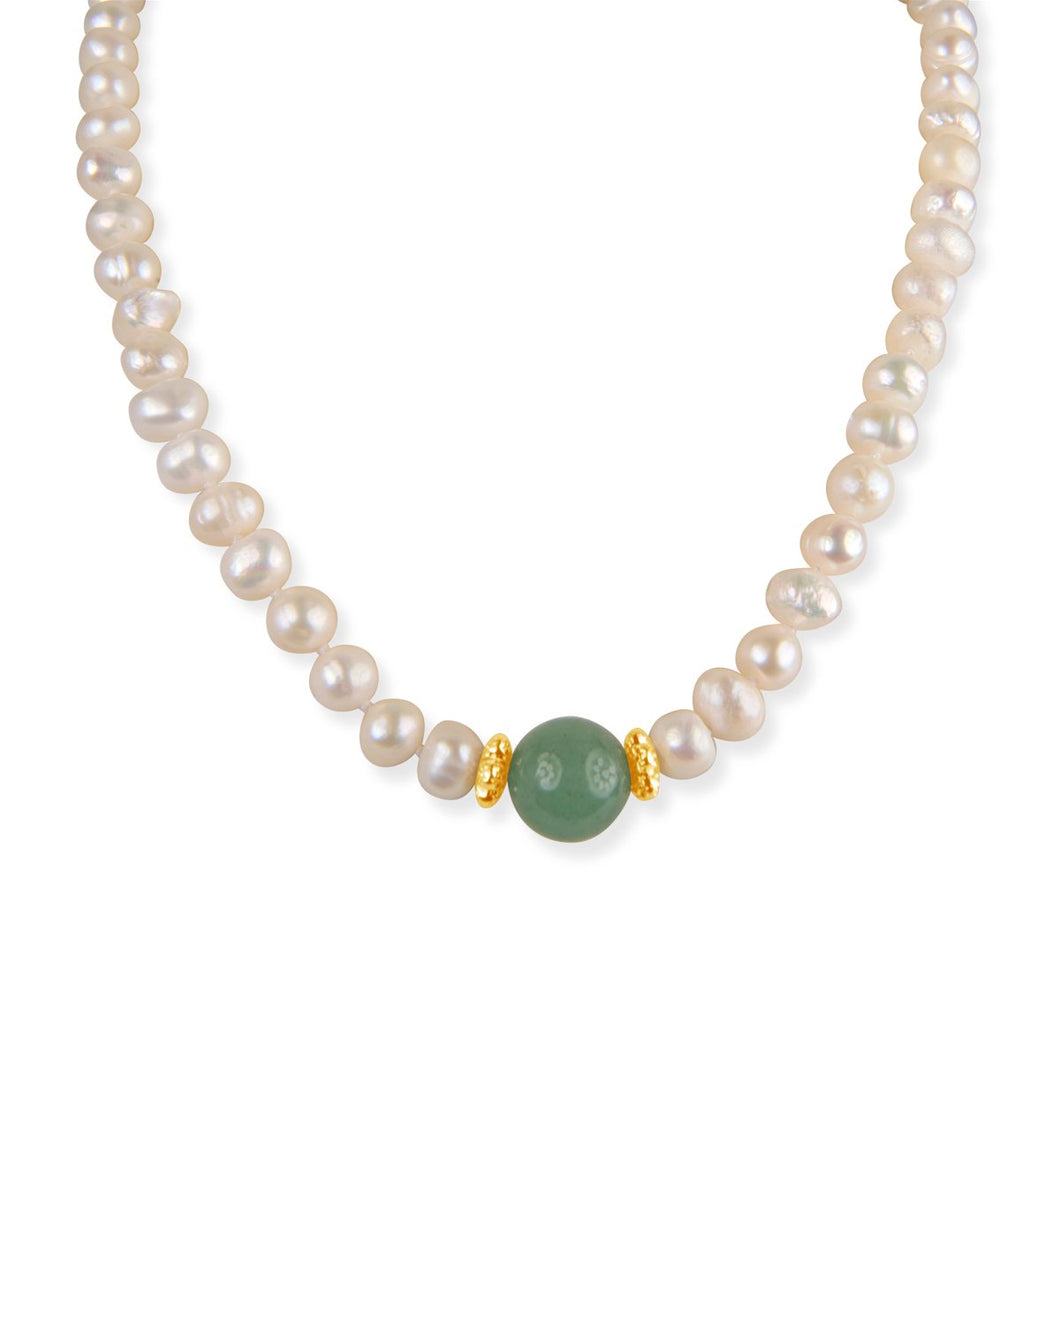 Pearl, Gold, and Aventurine Necklace